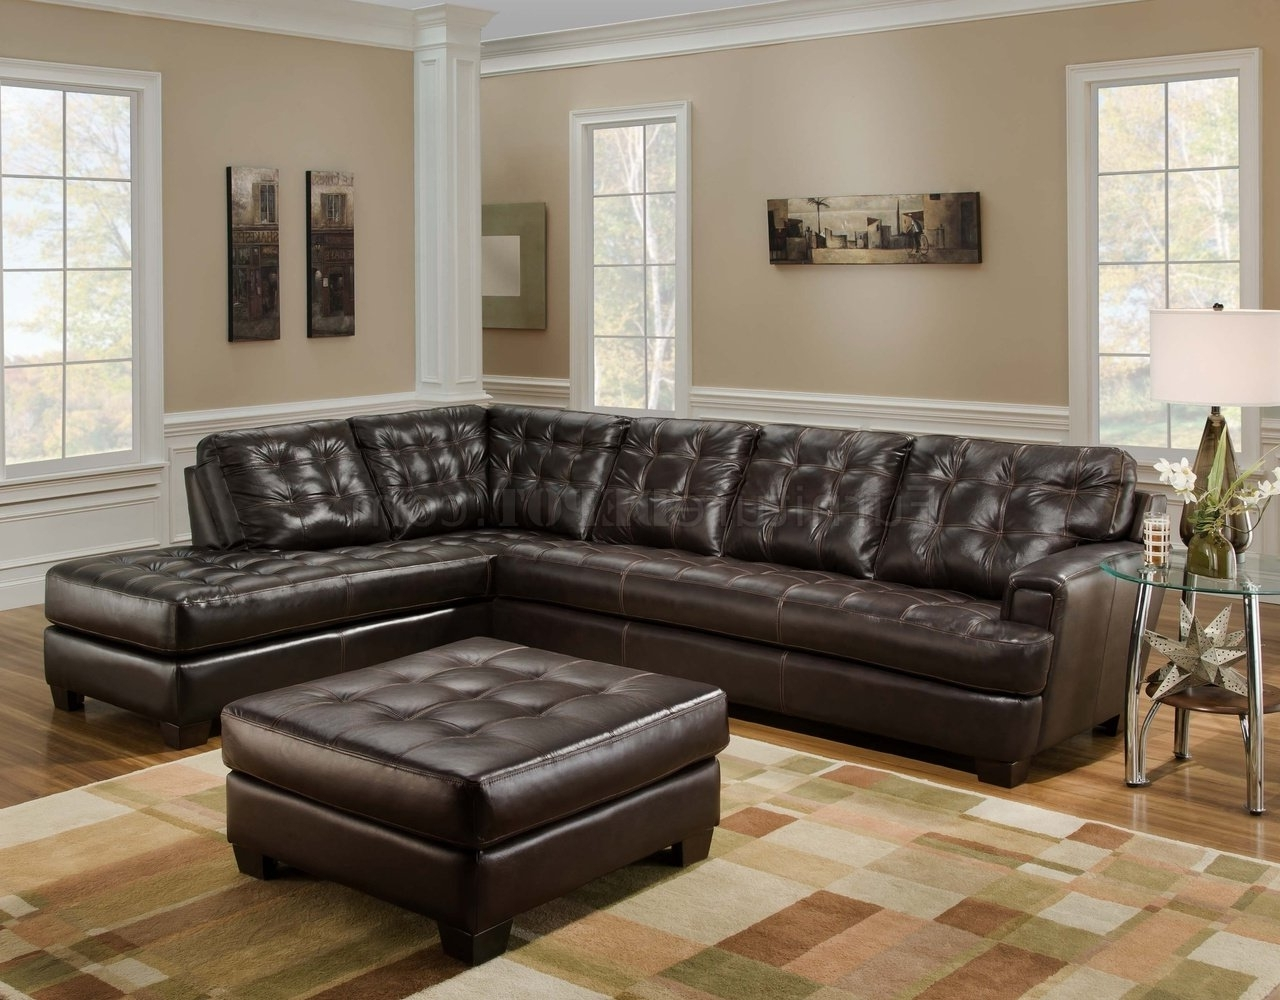 Leather Sectional Sofas With Ottoman With Regard To Preferred Chicory Brown Tufted Top Grain Leather Modern Sectional Sofa (View 15 of 20)